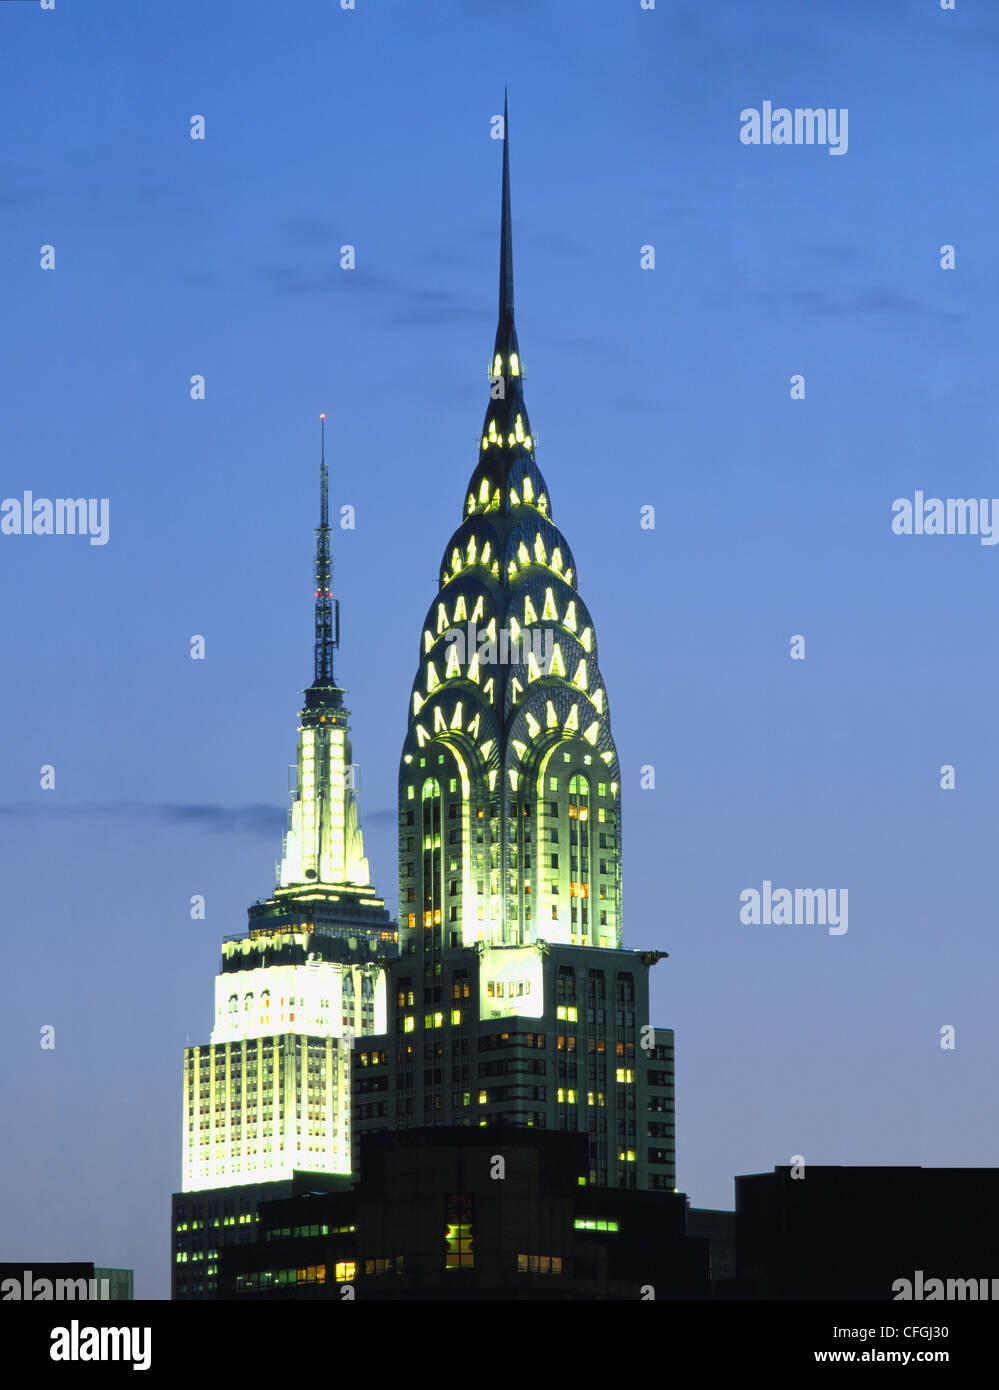 CHRYSLER UND EMPIRE STATE GEBÄUDE IN DER NACHT, NEW YORK, USA. Stockbild